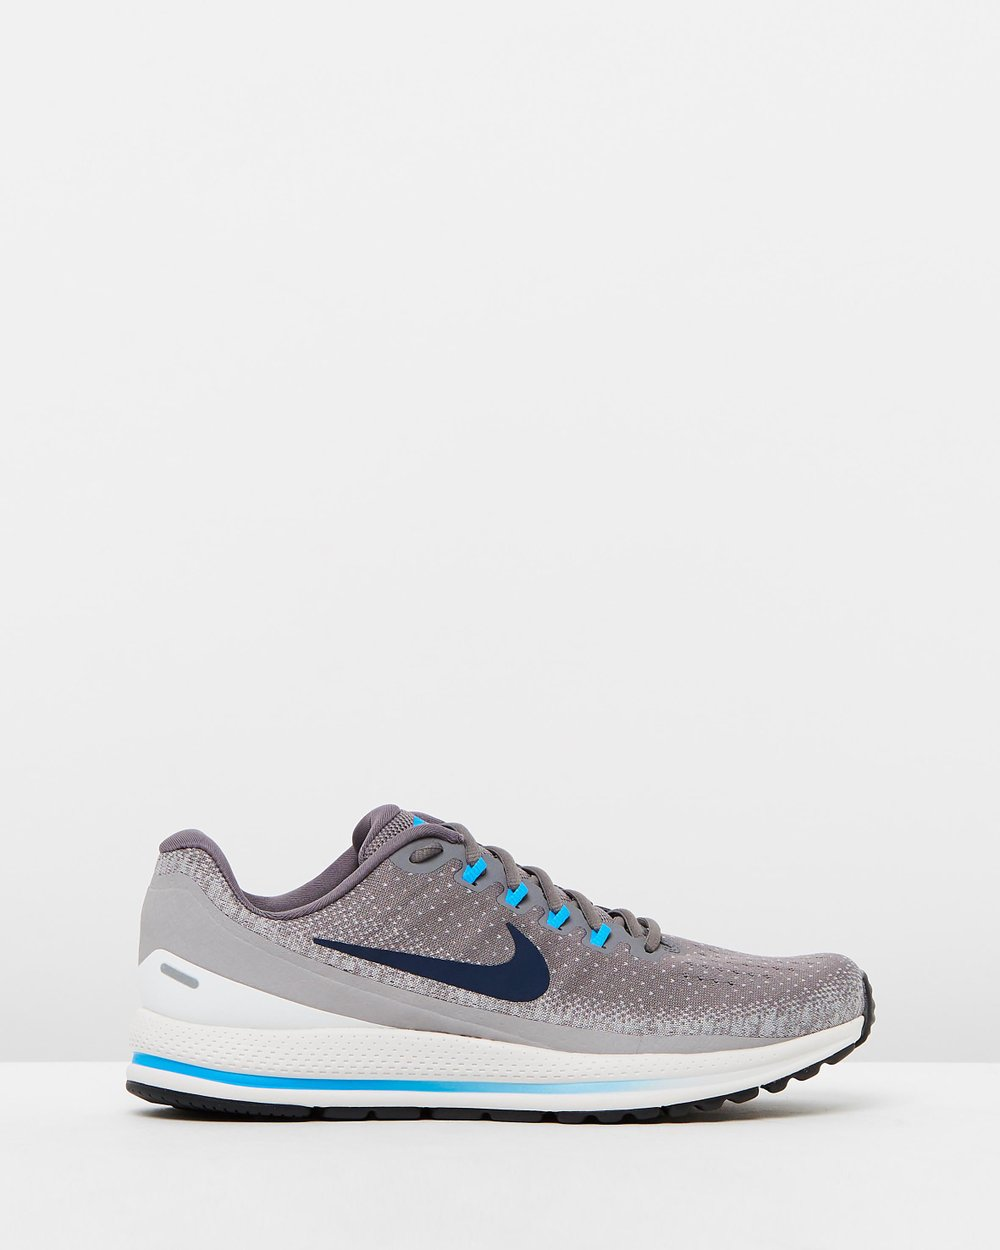 db6dfaf68c51 Air Zoom Vomero 13 - Men s by Nike Online